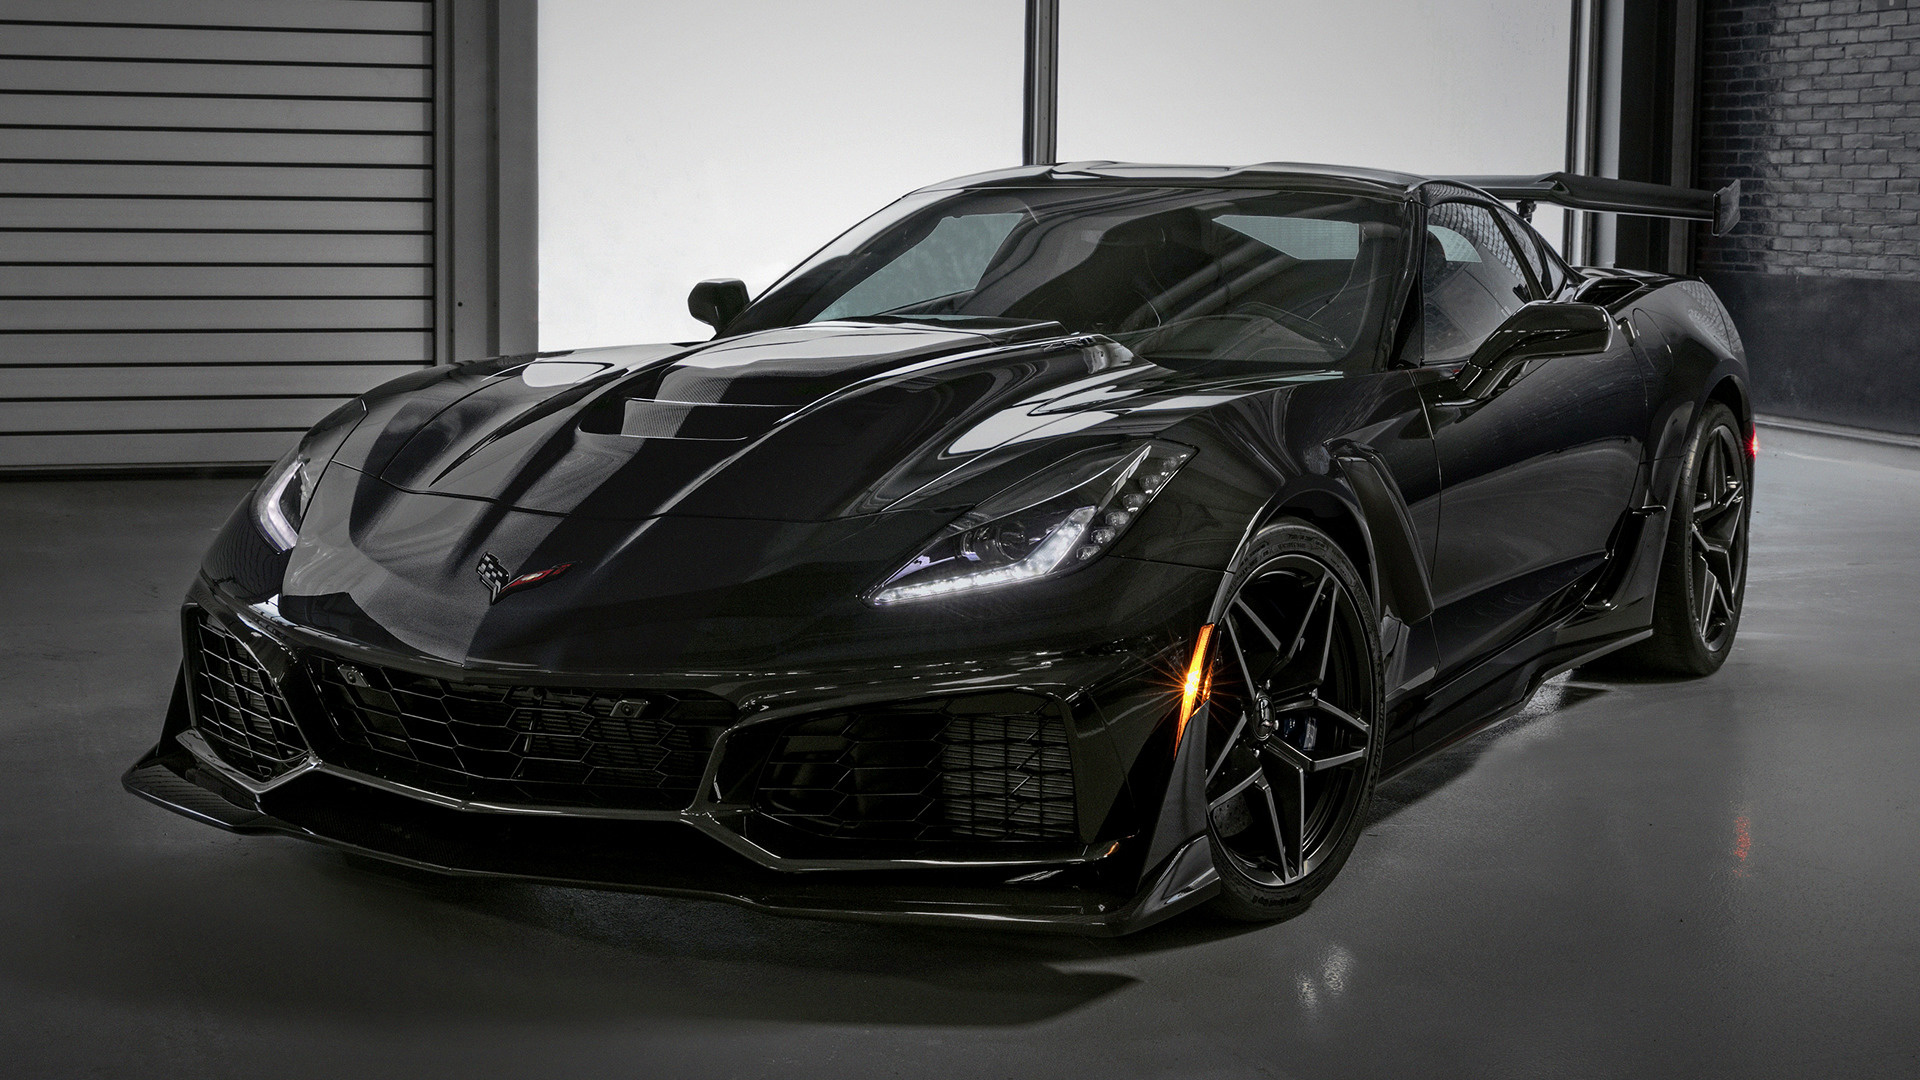 Mini Cars For Sale >> 2018 Chevrolet Corvette ZR1 - Wallpapers and HD Images ...